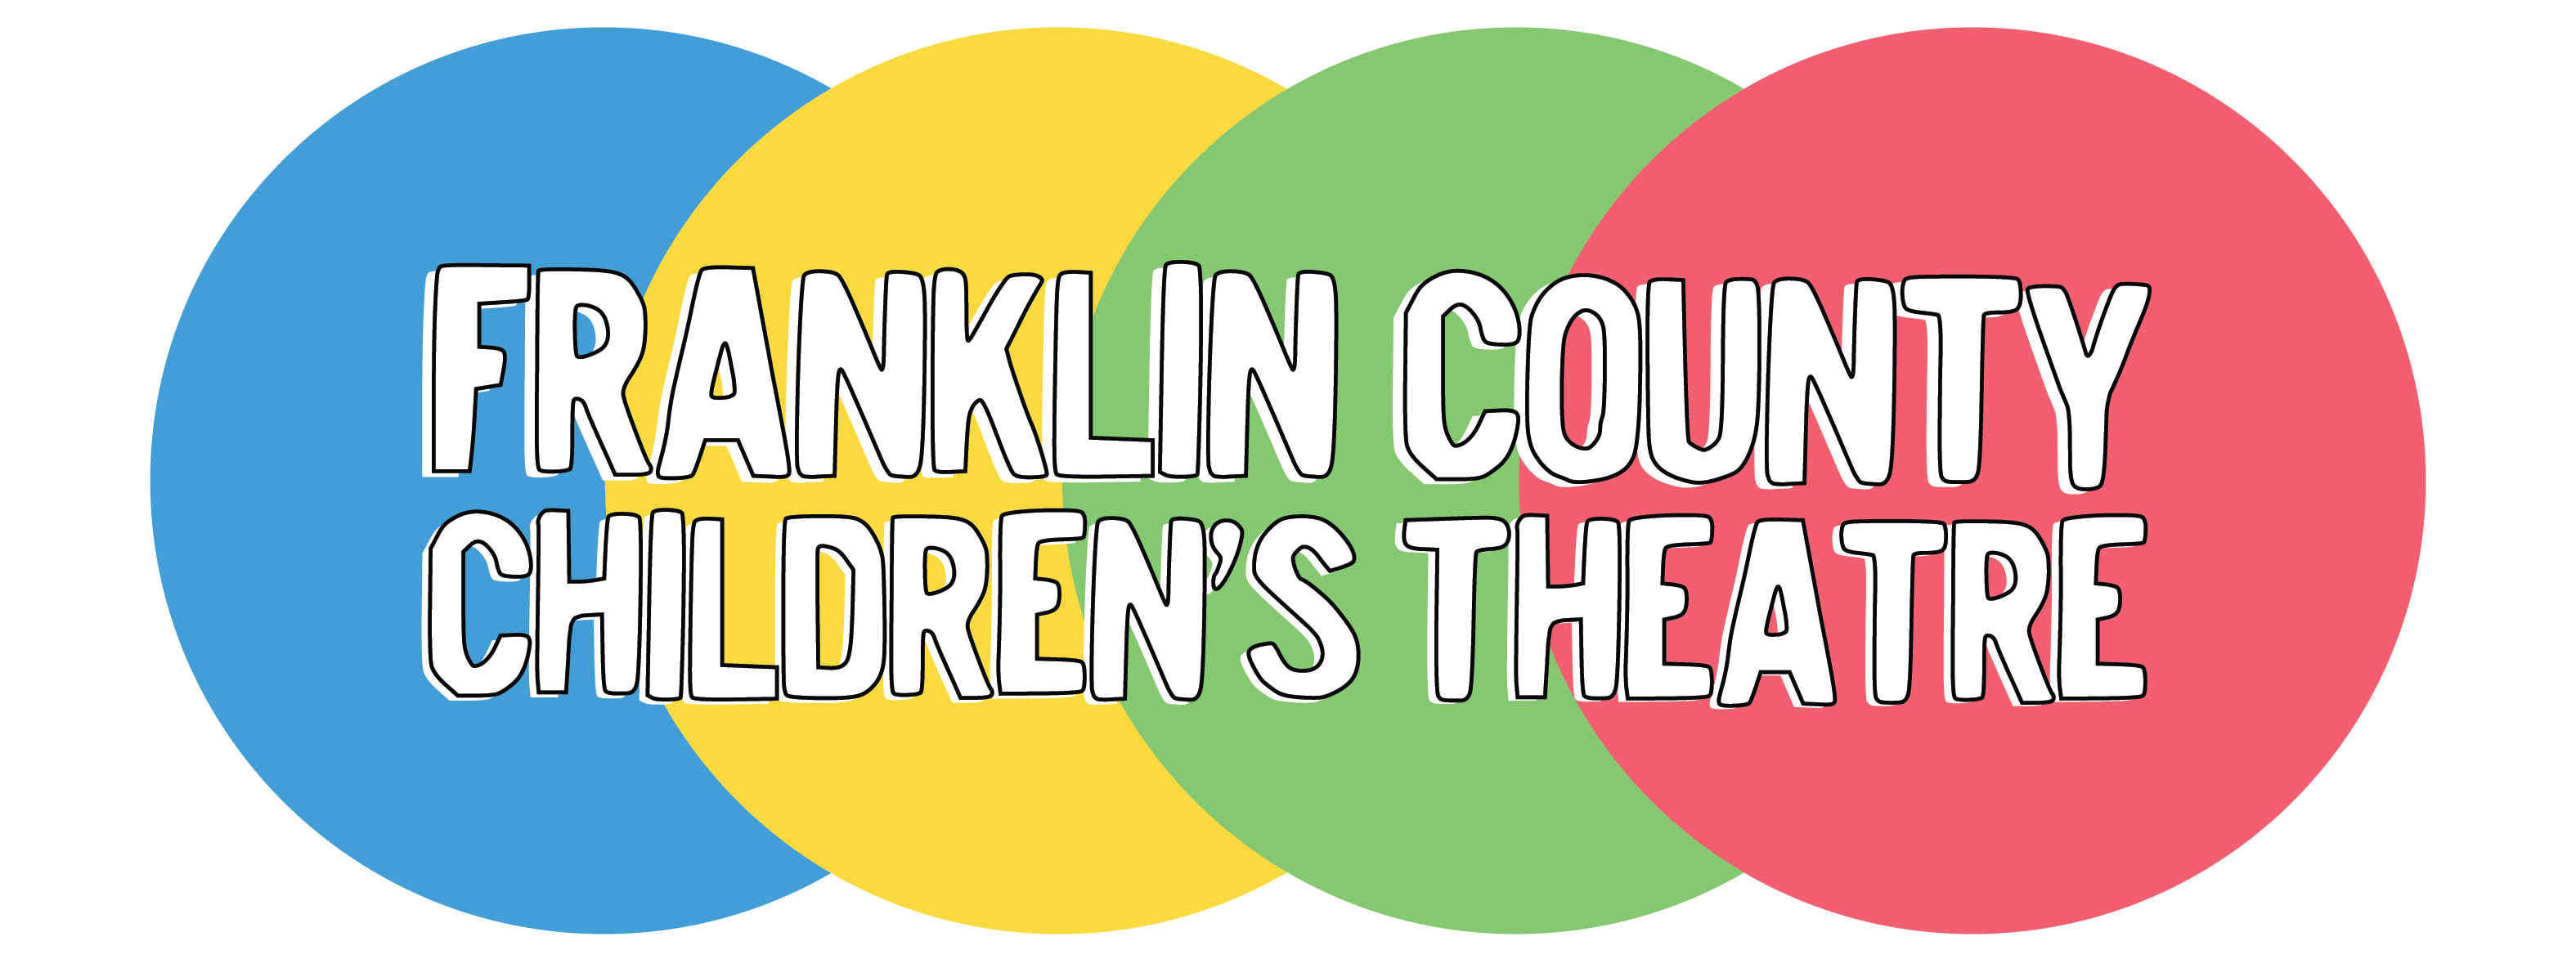 Franklin County Children's Theatre